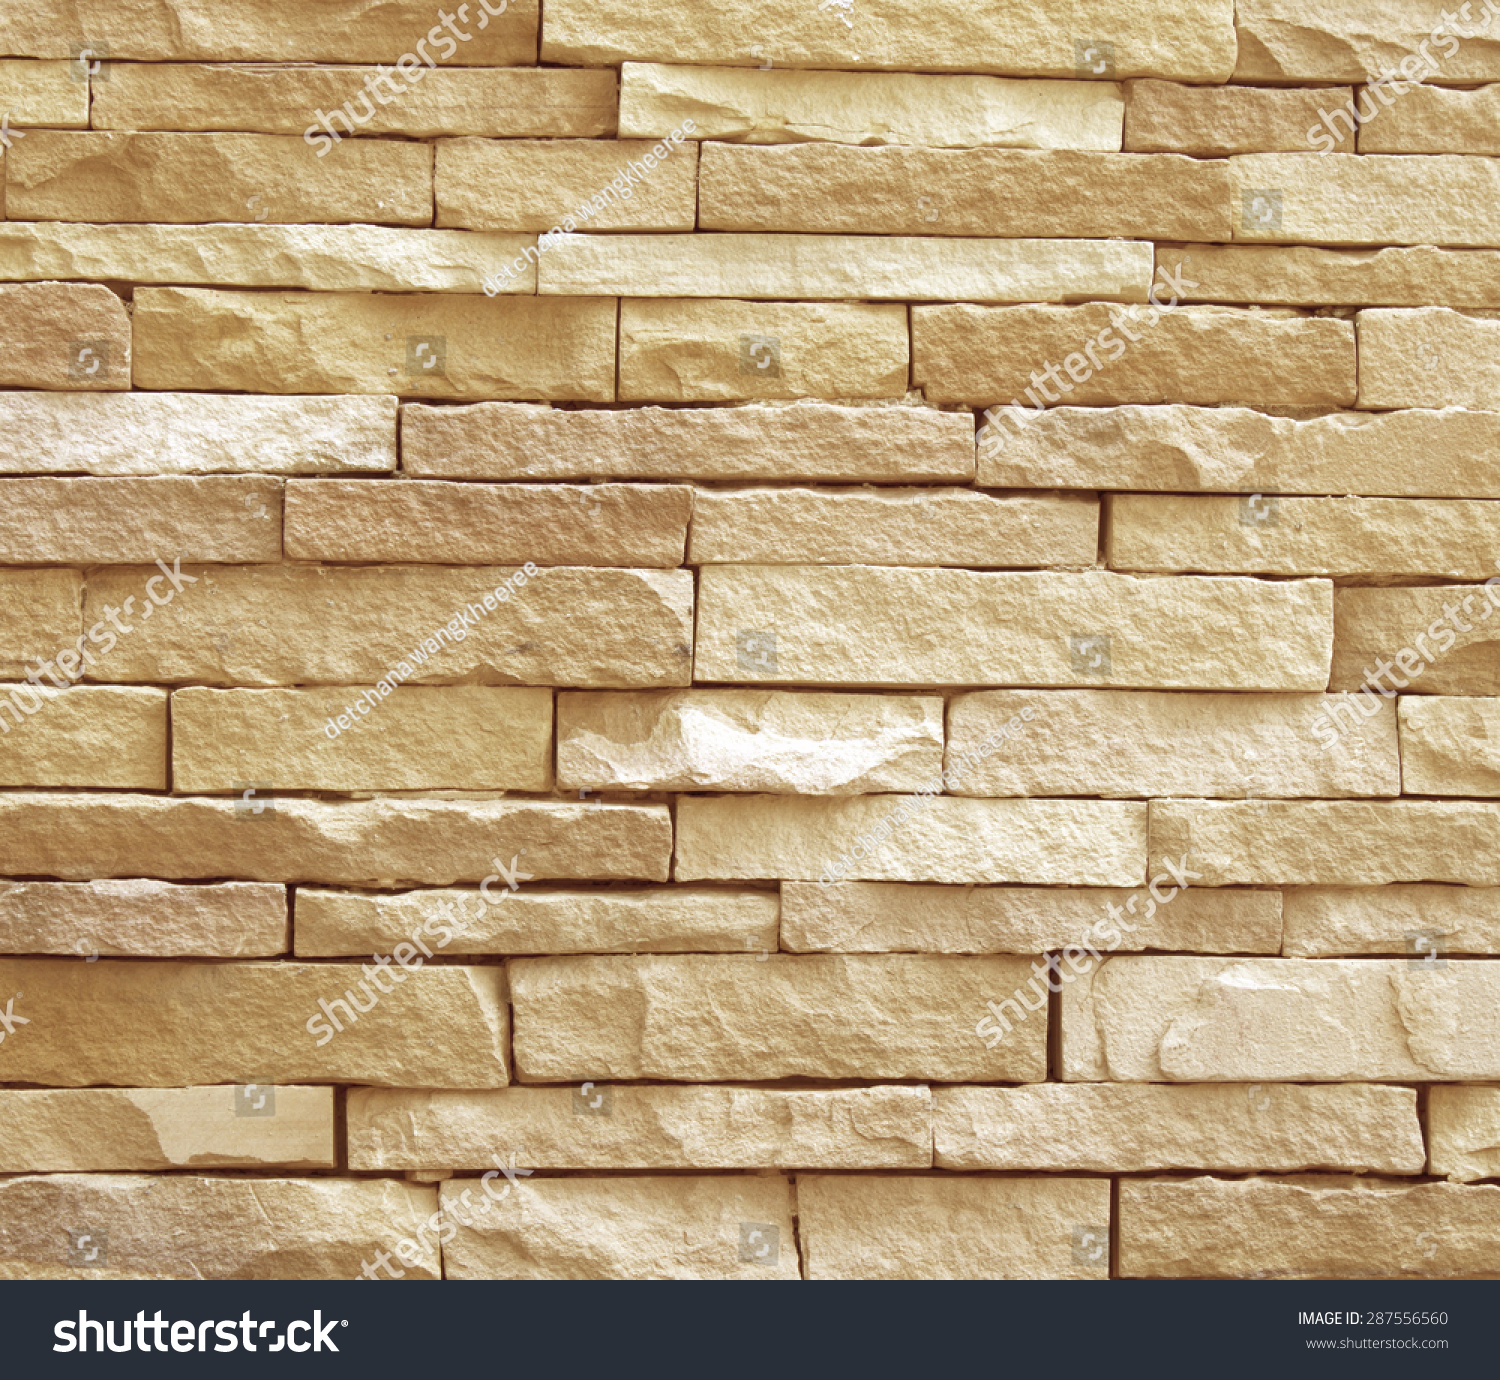 Background of stone wall made with blocks   EZ Canvas